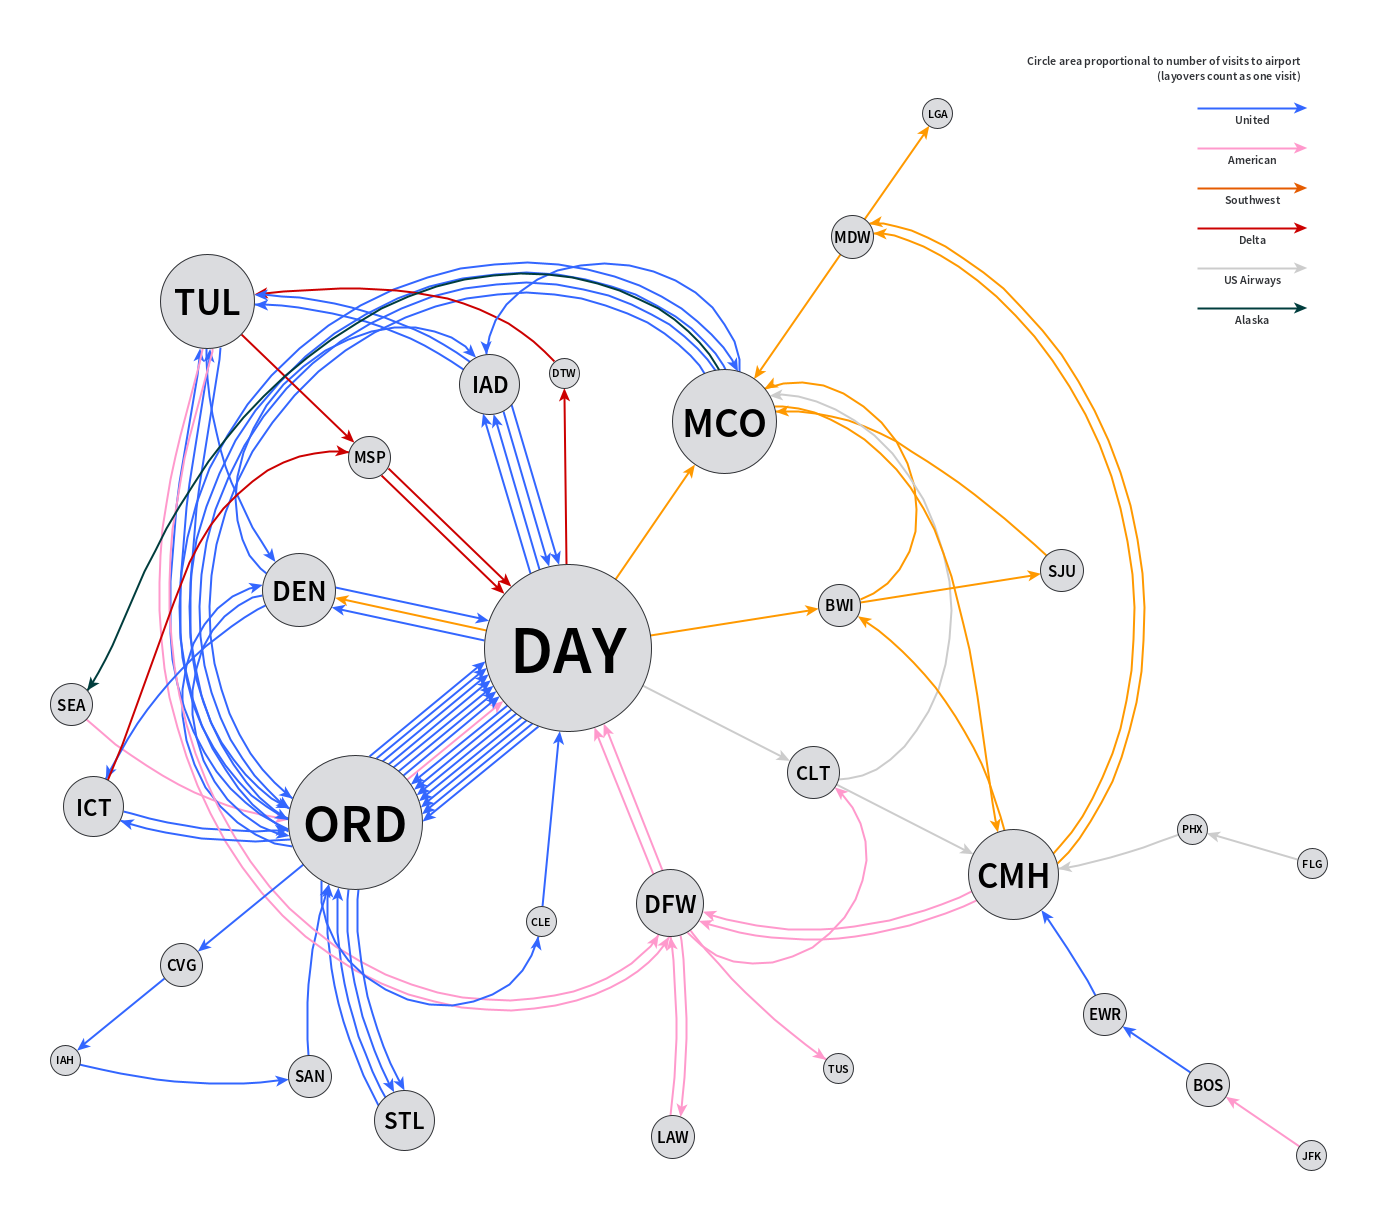 Directed graph for 2014 flights